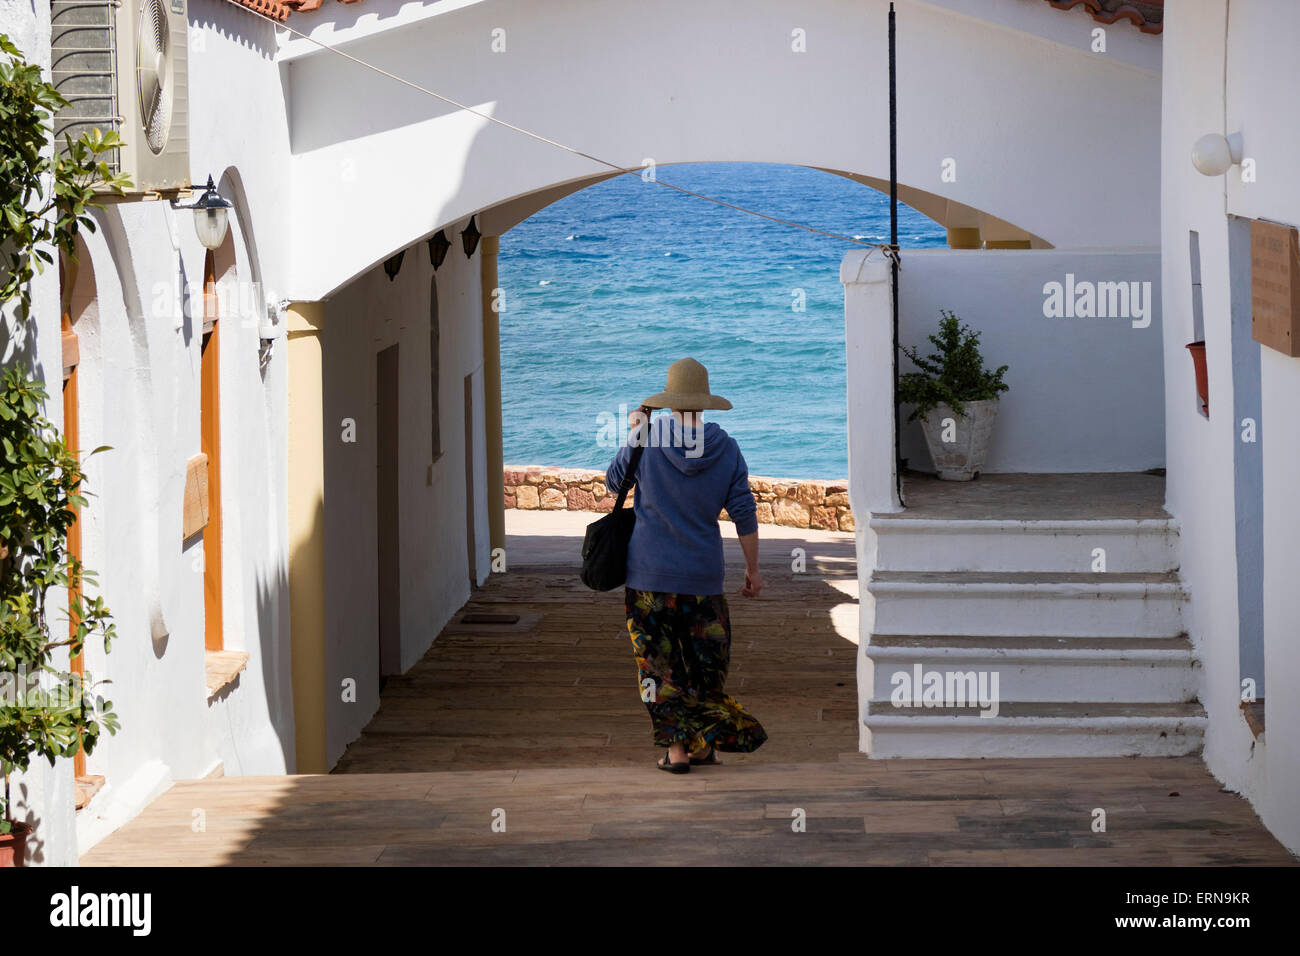 Tourist walking to the sea in Mega Limnionas on the isle of Chios, Greece - Stock Image